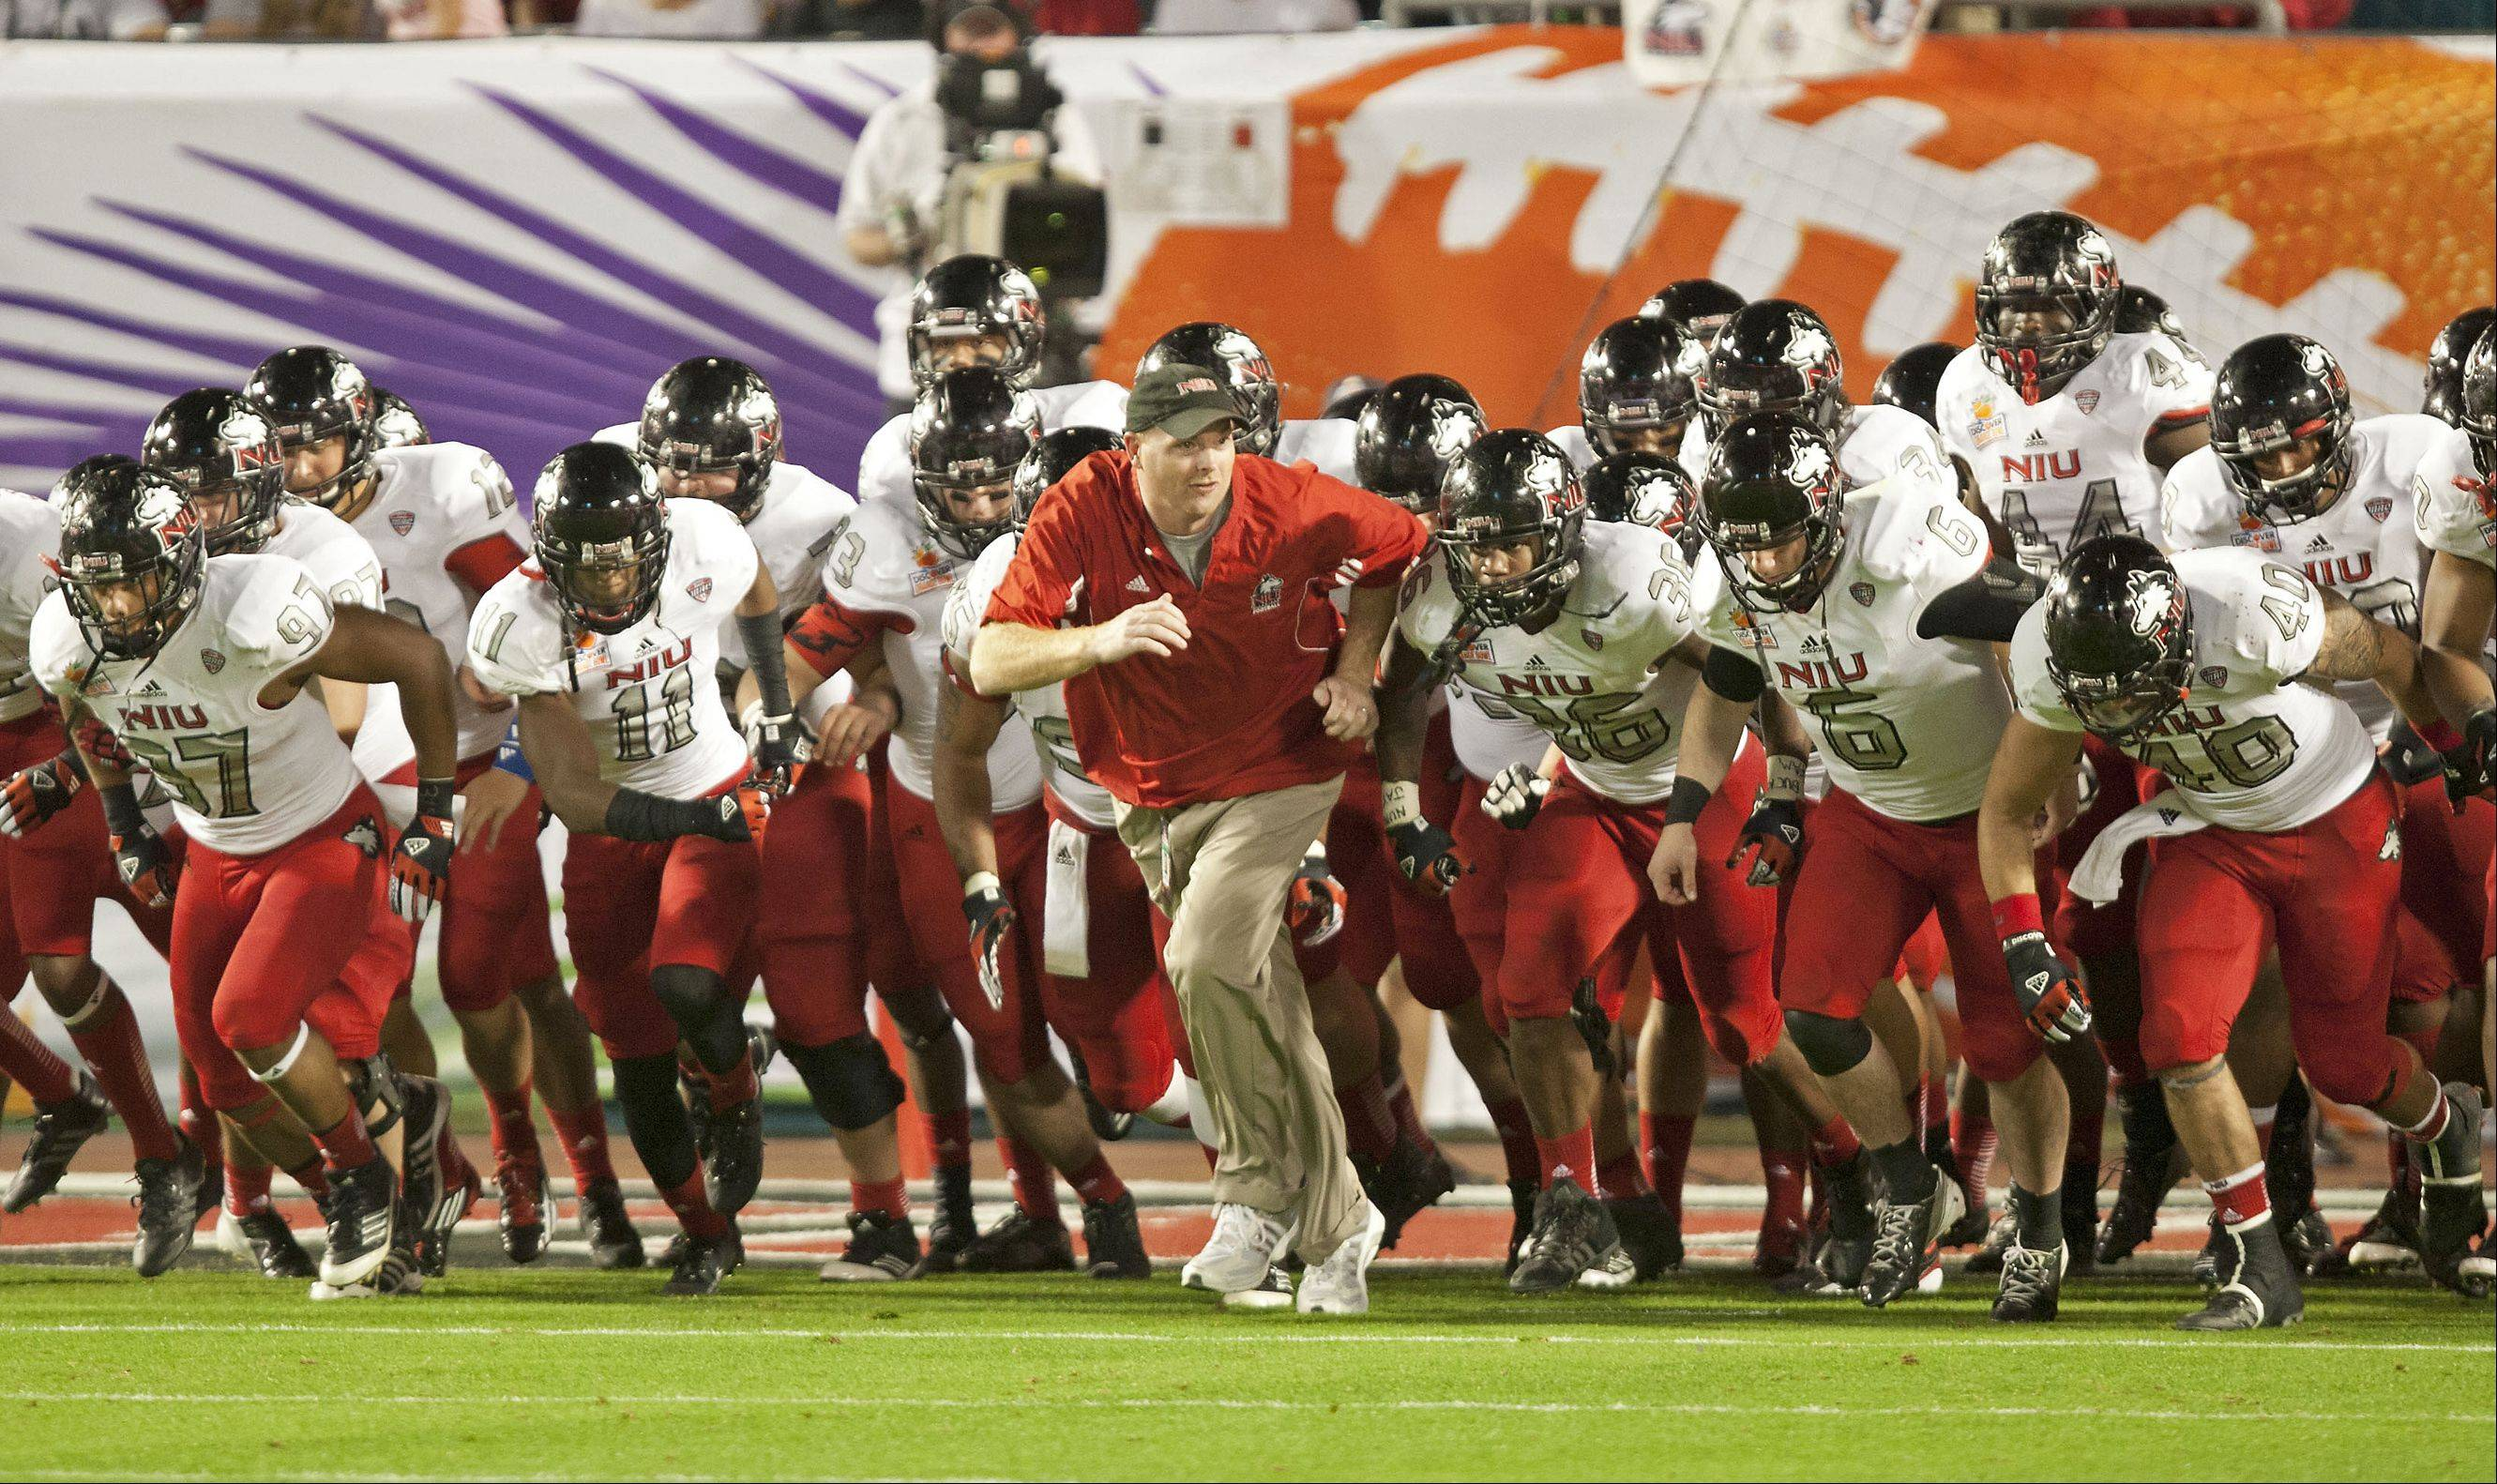 NIU head coach Rod Carey and the Huskies will open the season at Iowa and play four of their first five games on the road next fall.